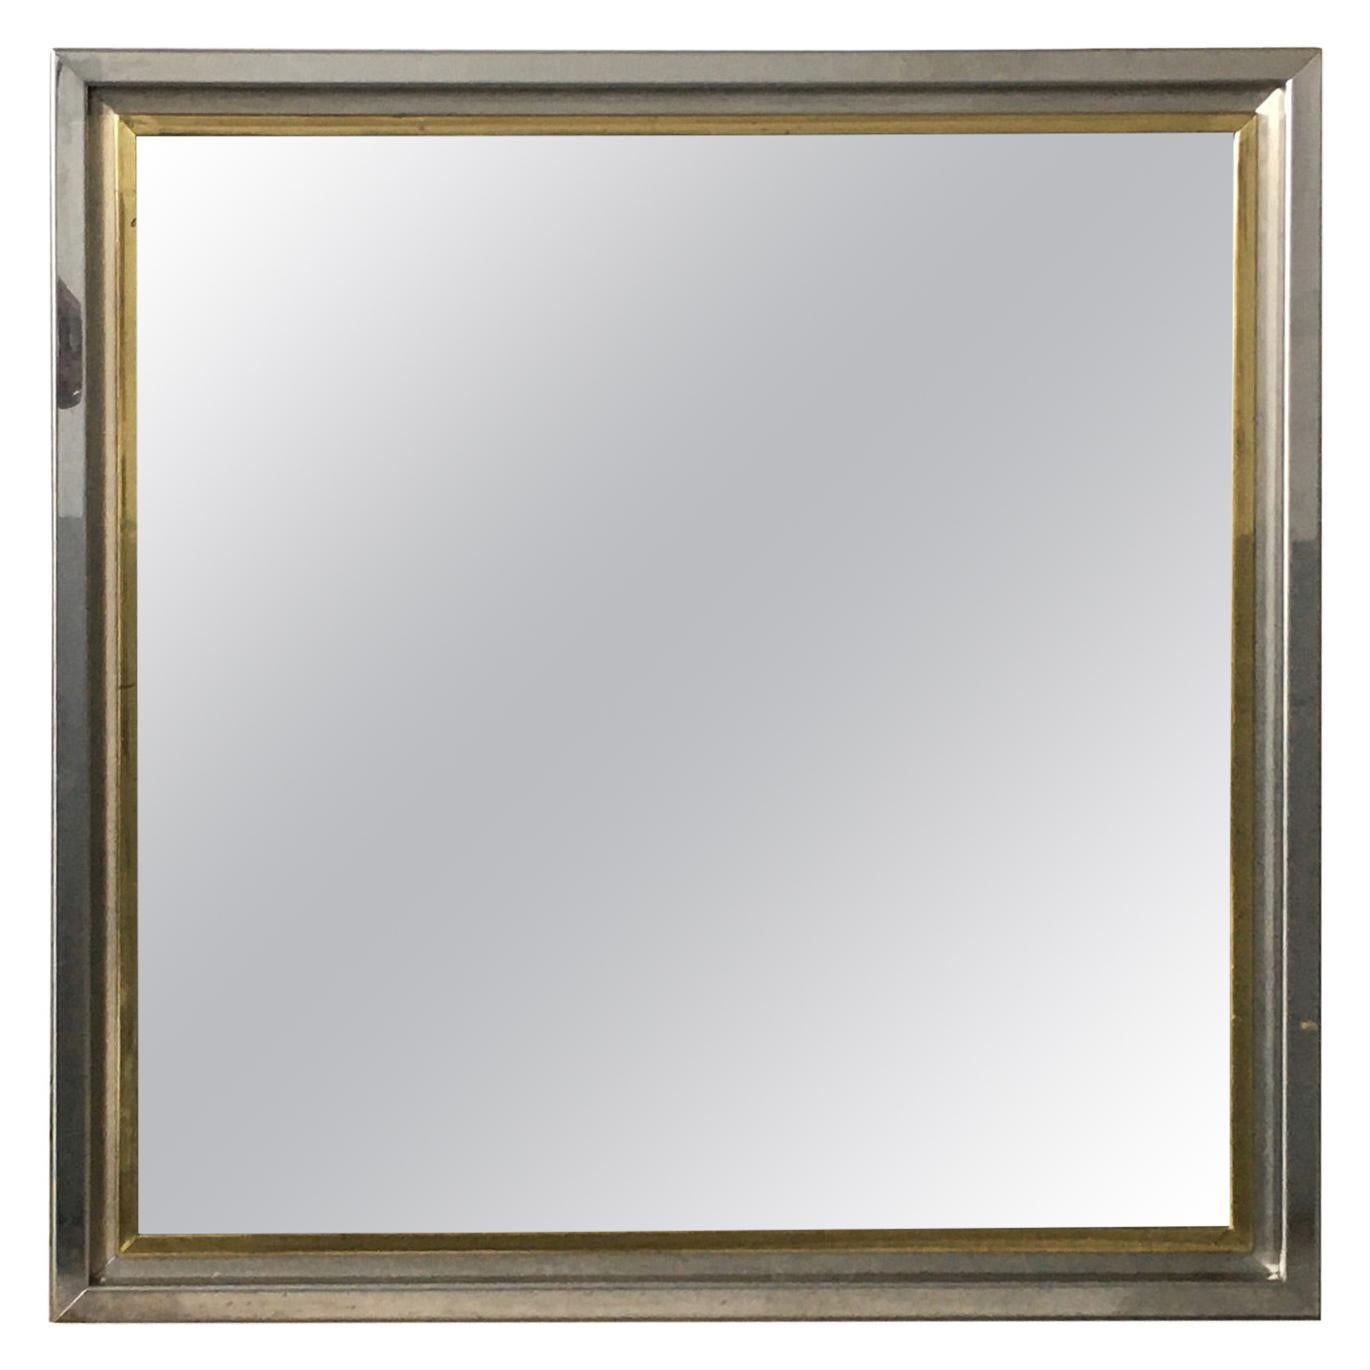 Mid-Century Modern Italian Wall Mirror with Chrome and Brass Frame, 1970s